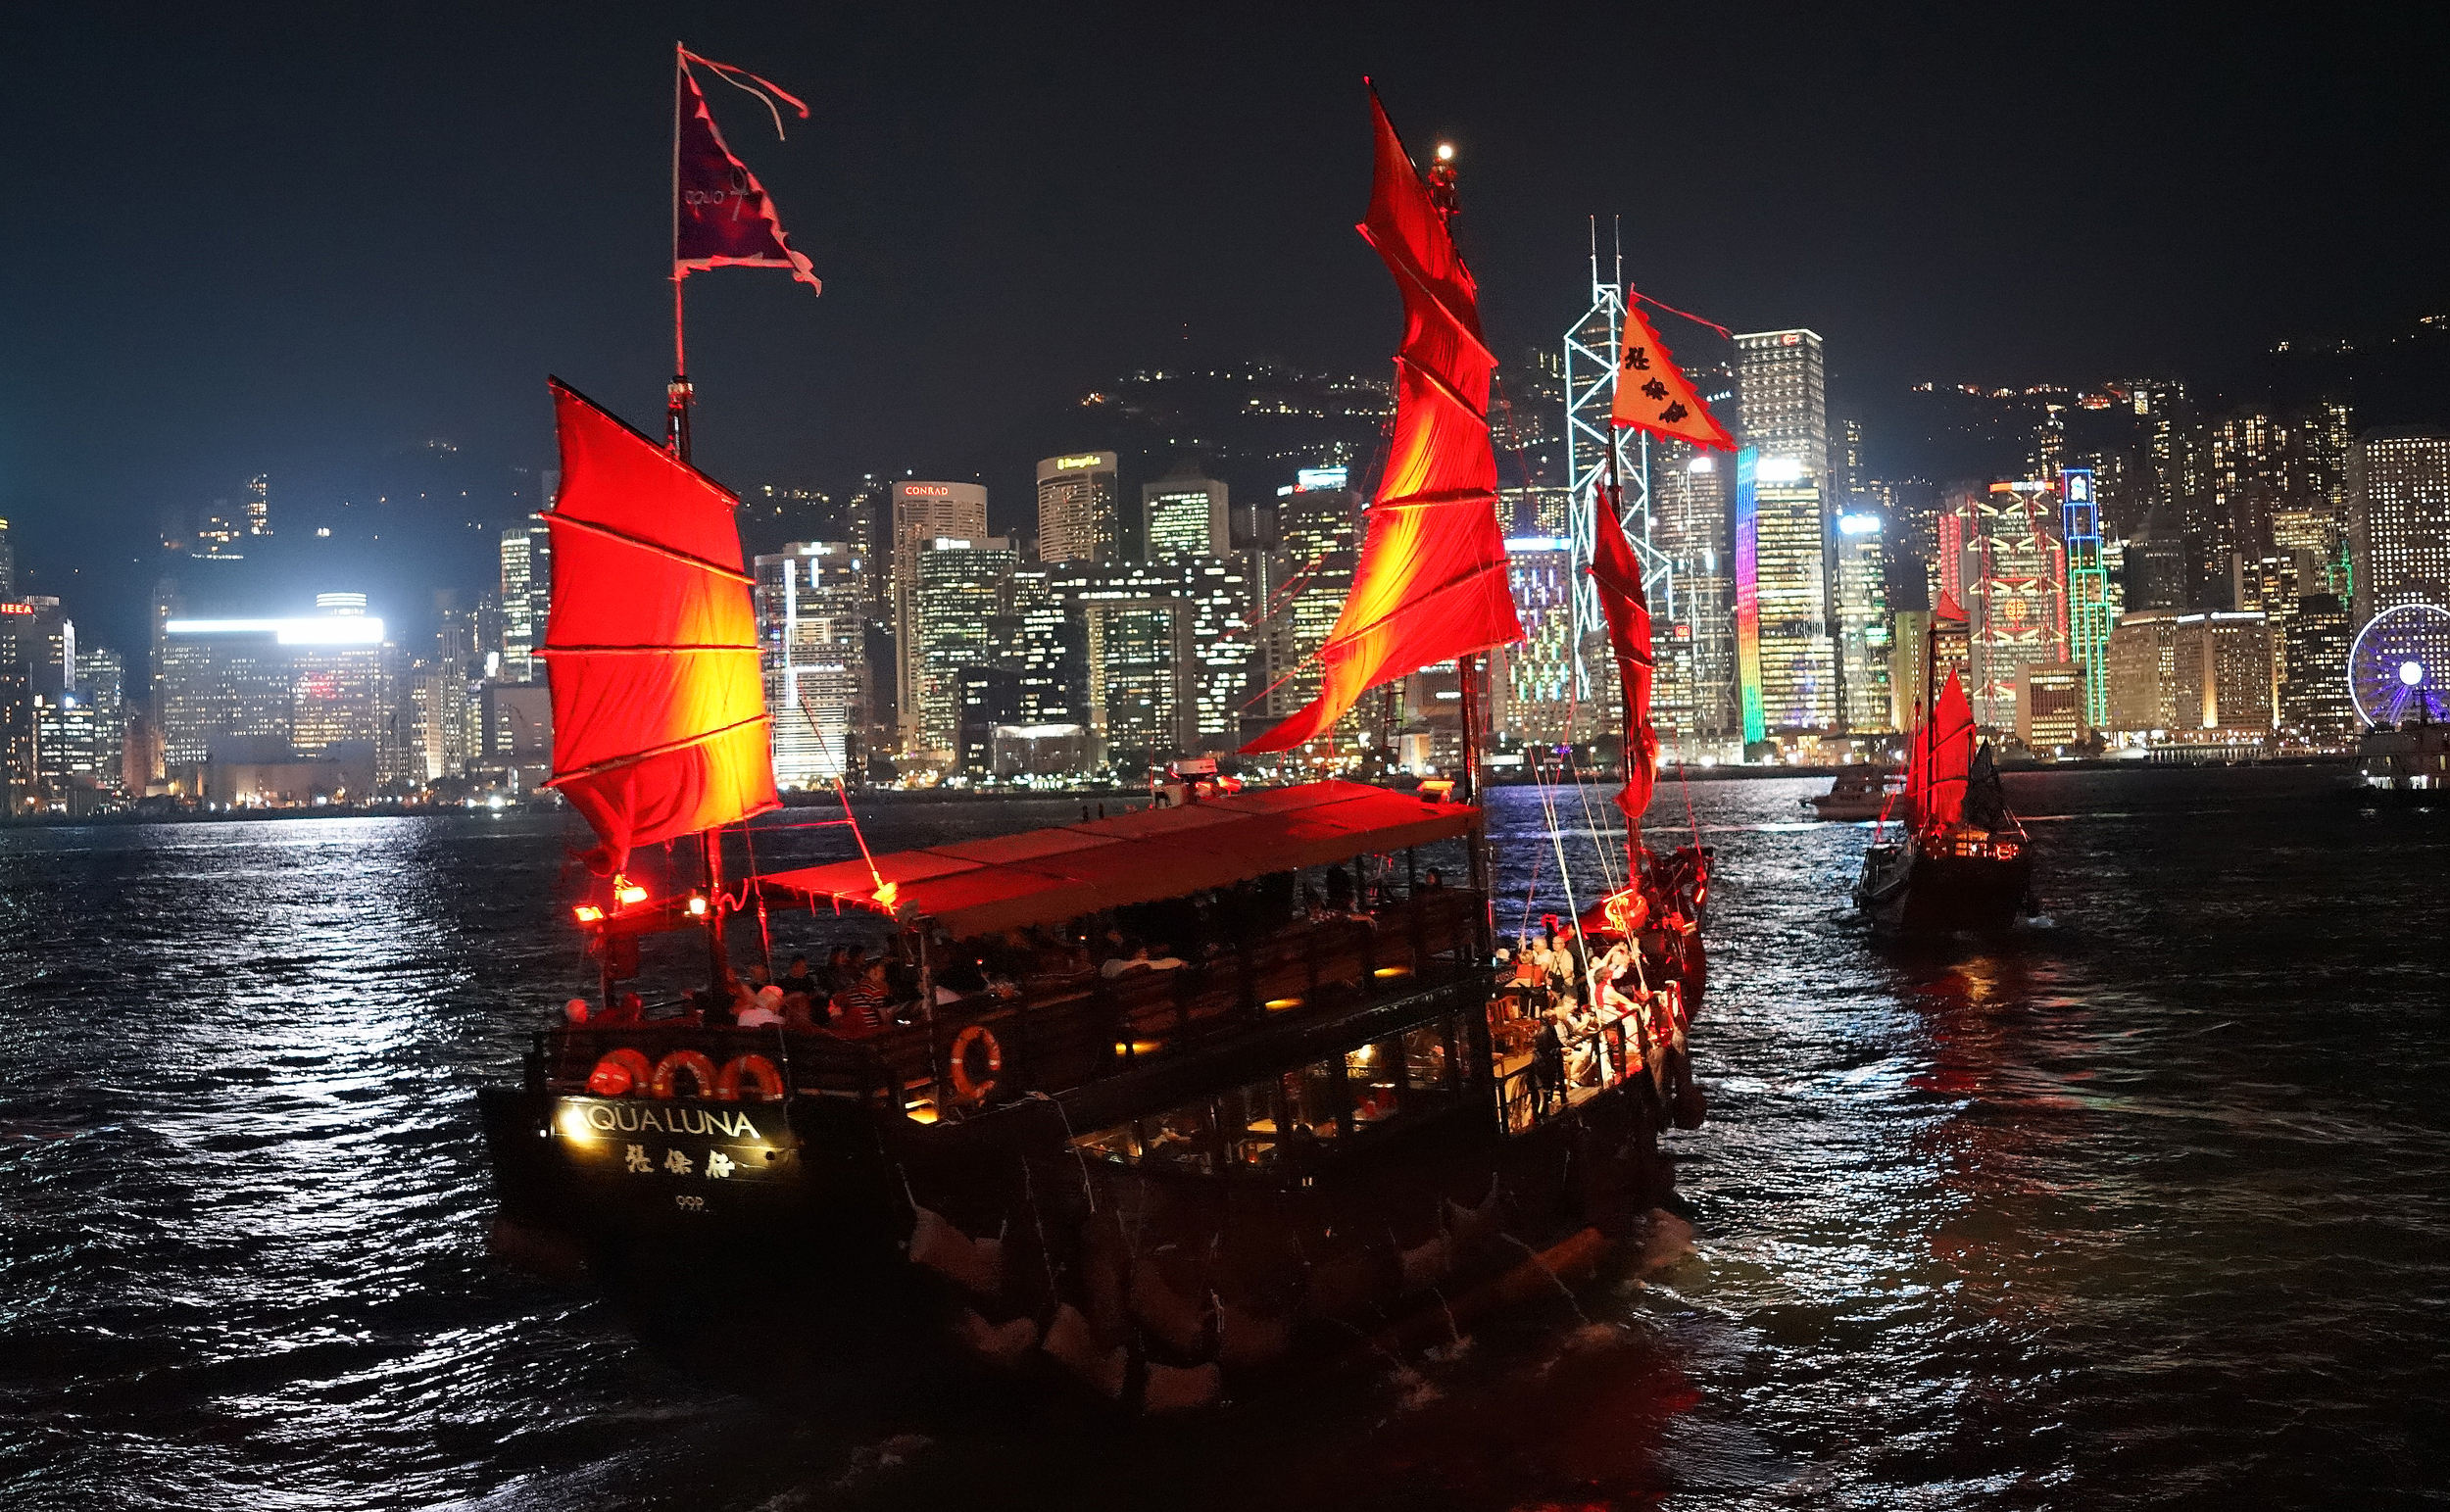 I would heartily recommend an evening cruise on the Aqua Luna an old converted Chinese Fishing Junk, it is pretty amazing..